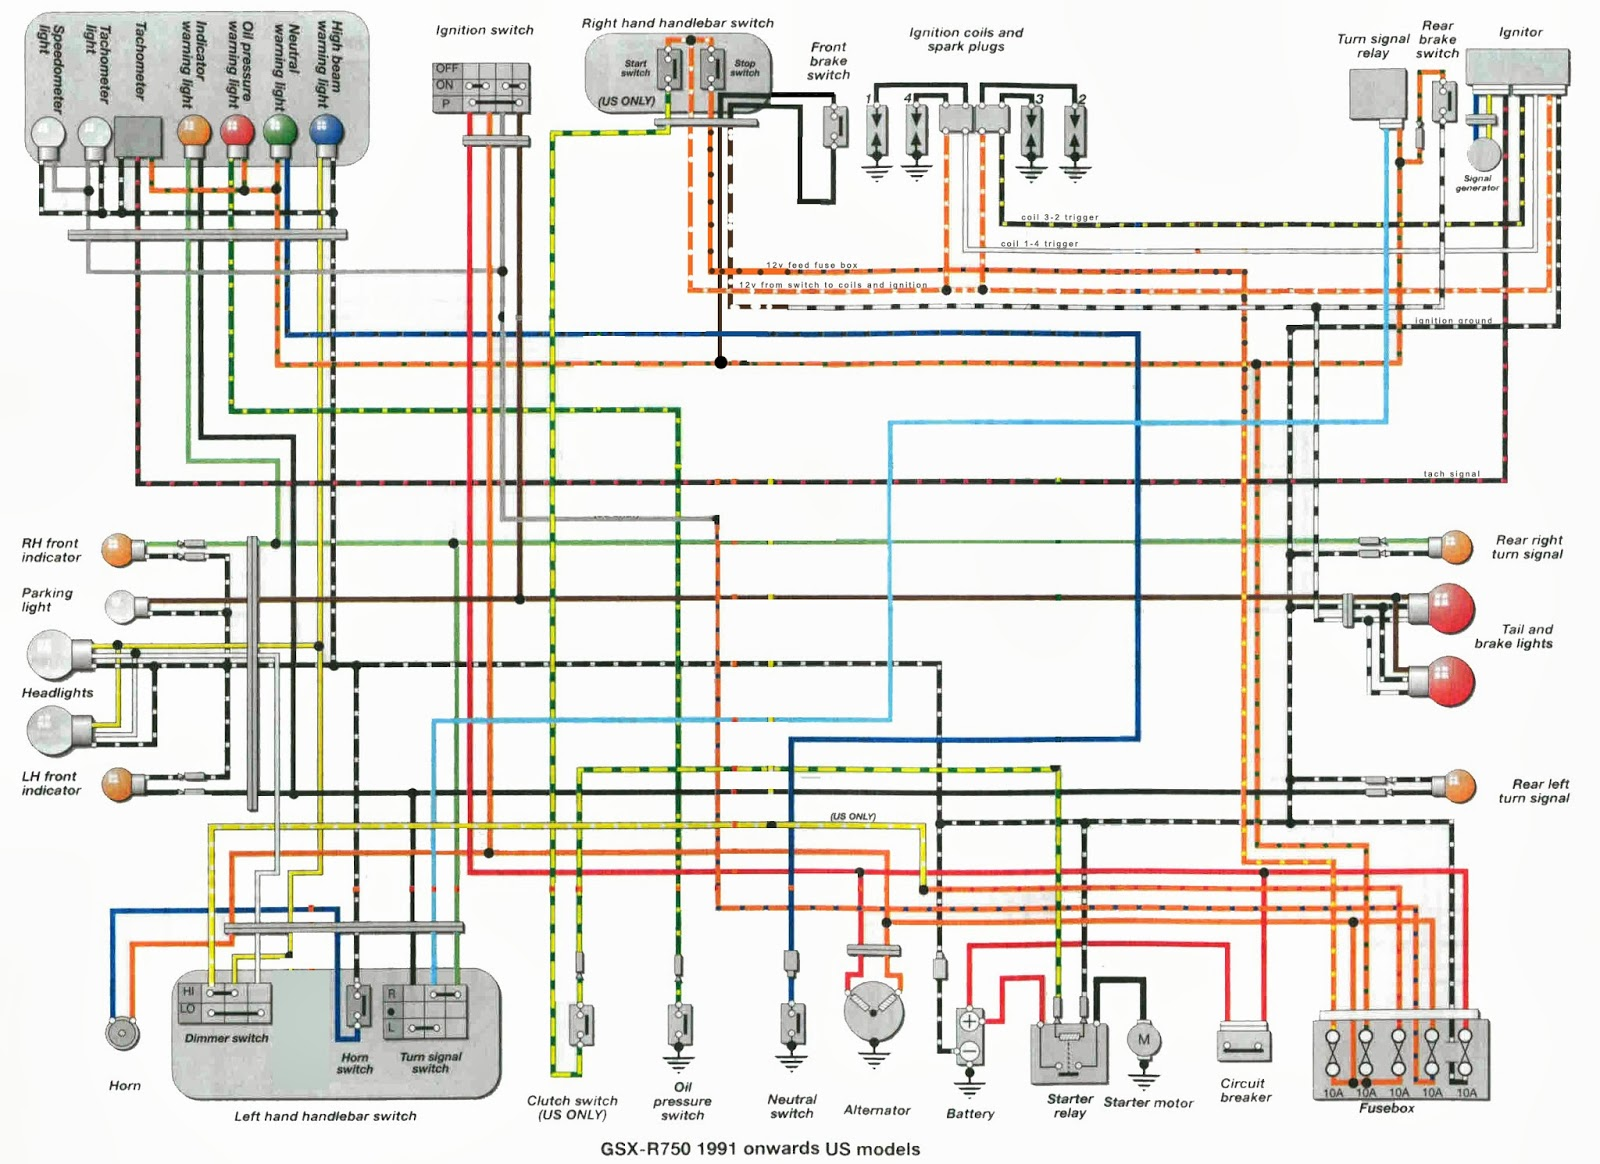 Wiring Diagram Suzuki Gsxr 600 1993 The Wiring Diagram